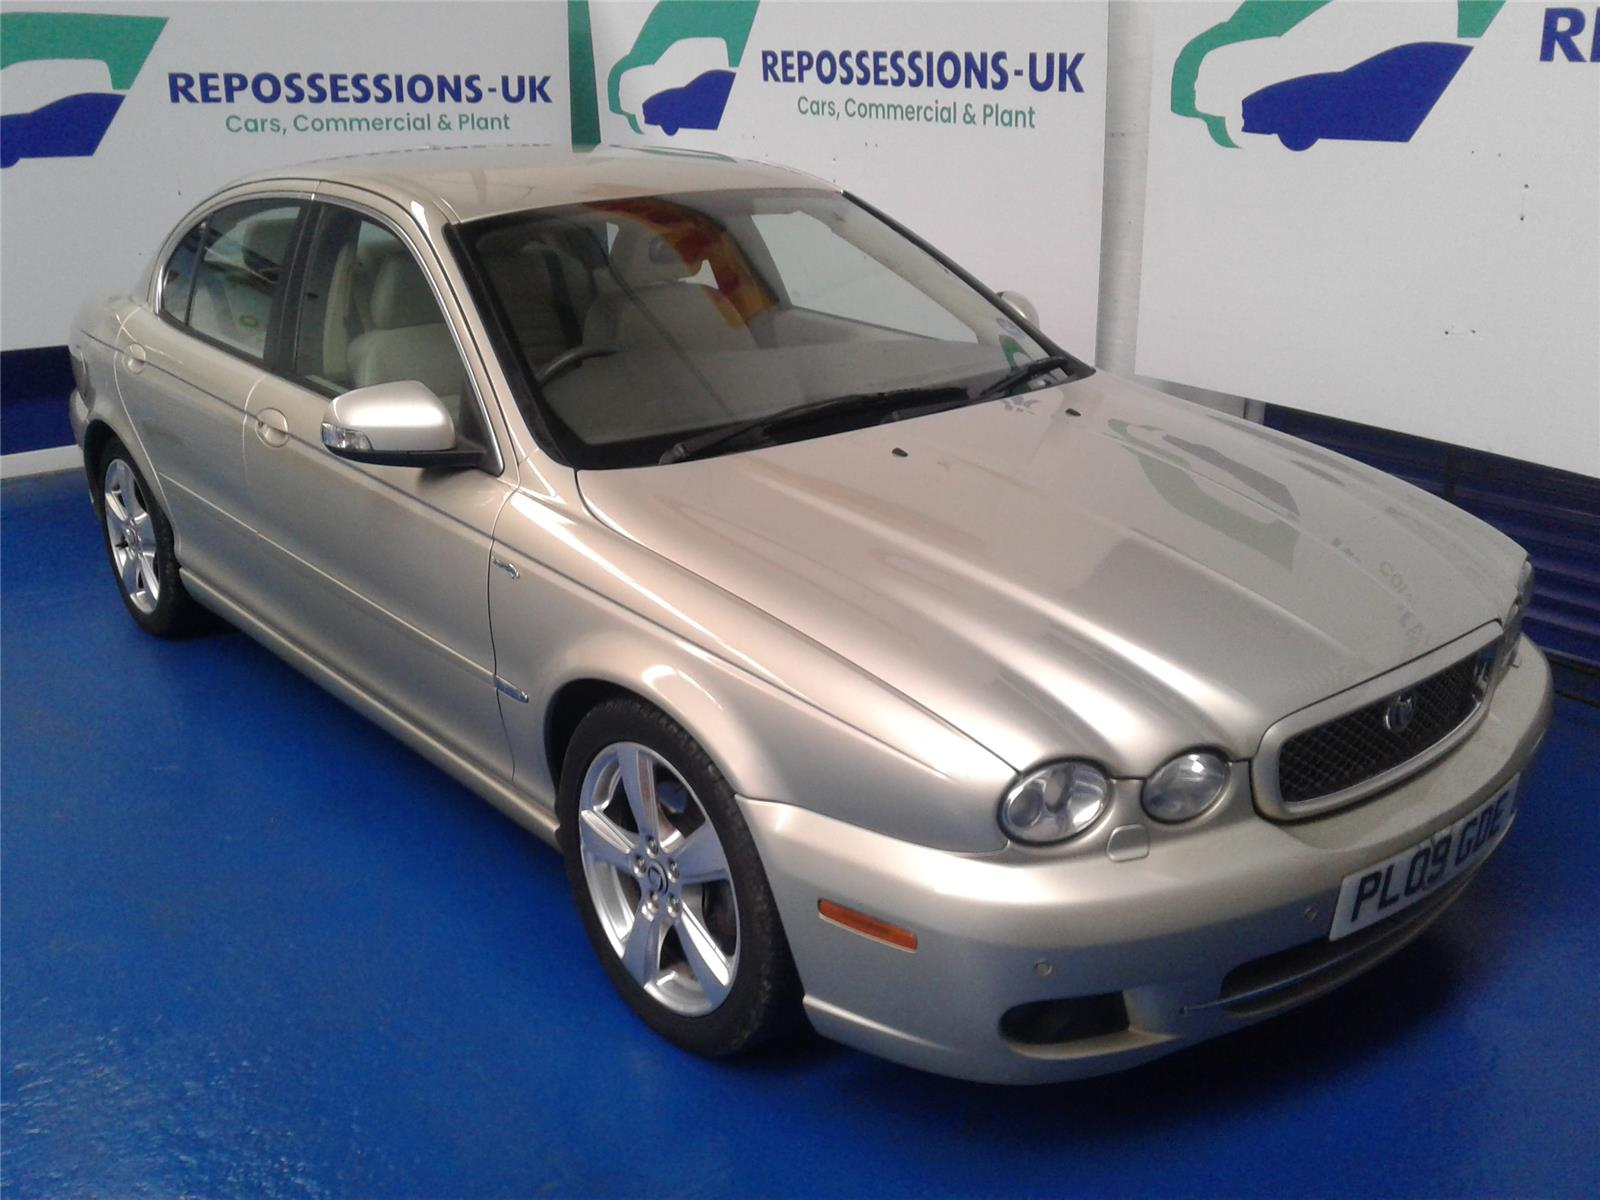 2009 Jaguar x type SE dCi 2198 Diesel Manual 6 Speed 4 Door Saloon